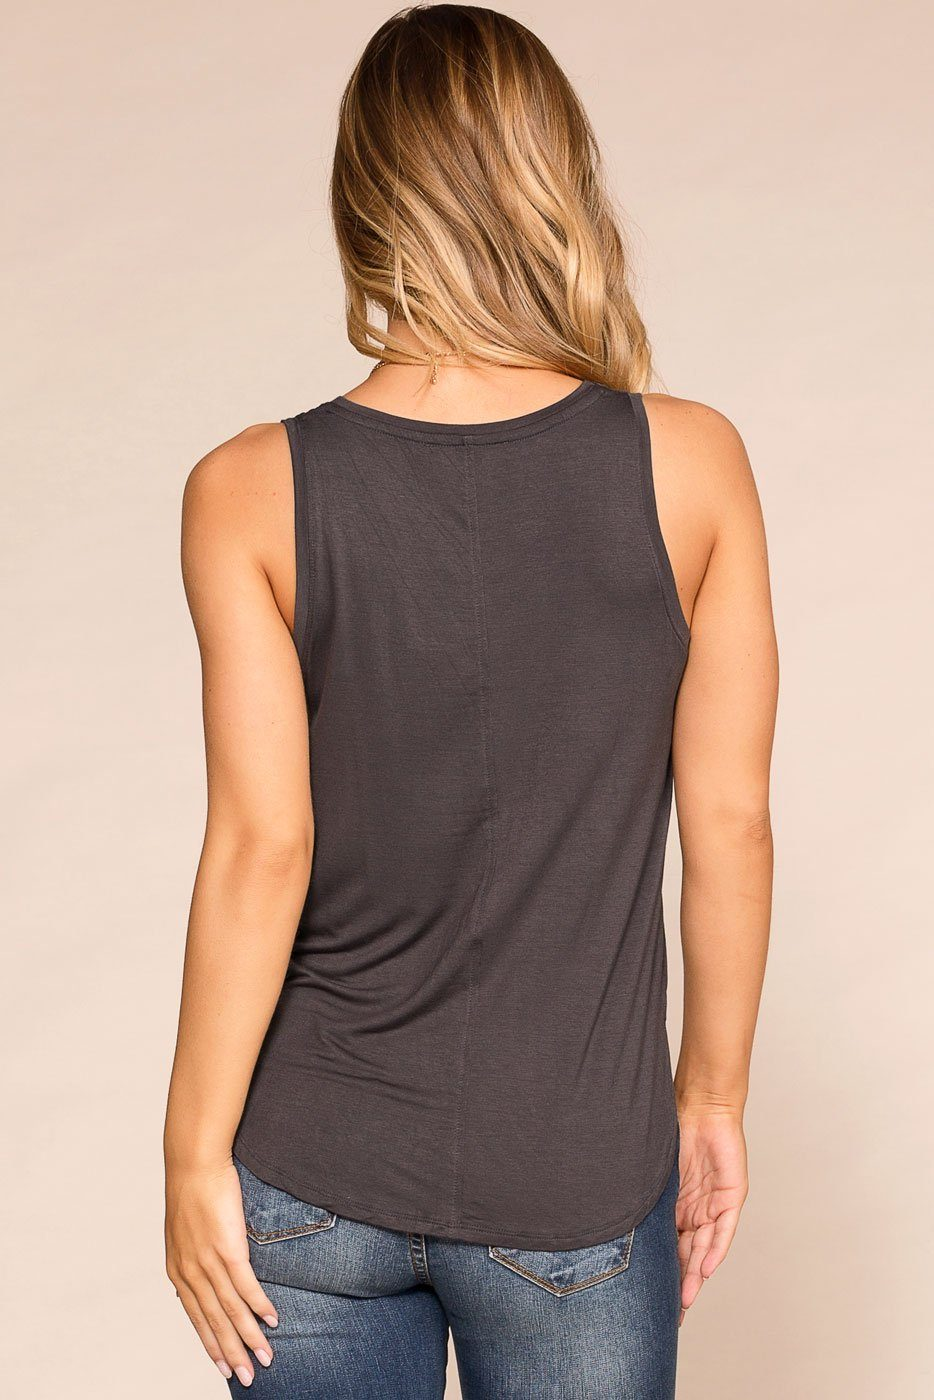 Priceless | Charcoal | Tank Top | Womens